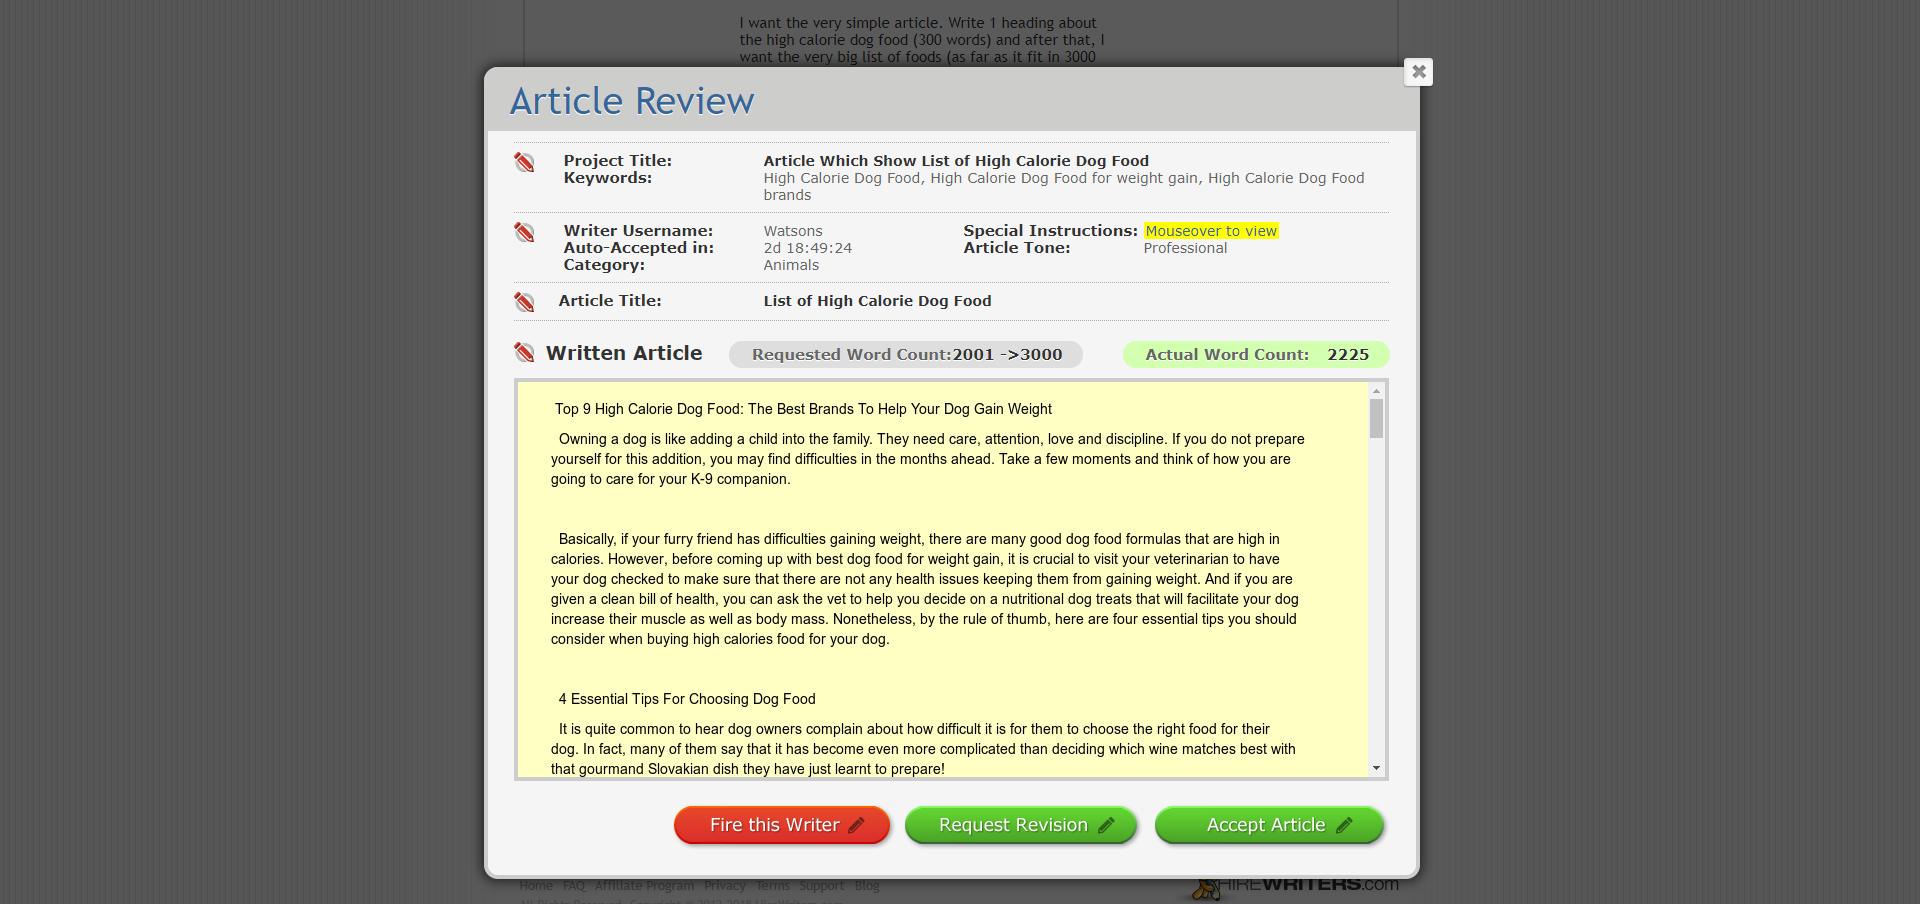 Write or Buy Content - Hire Writers, Fire this Writer, Request Revision, Accept Article